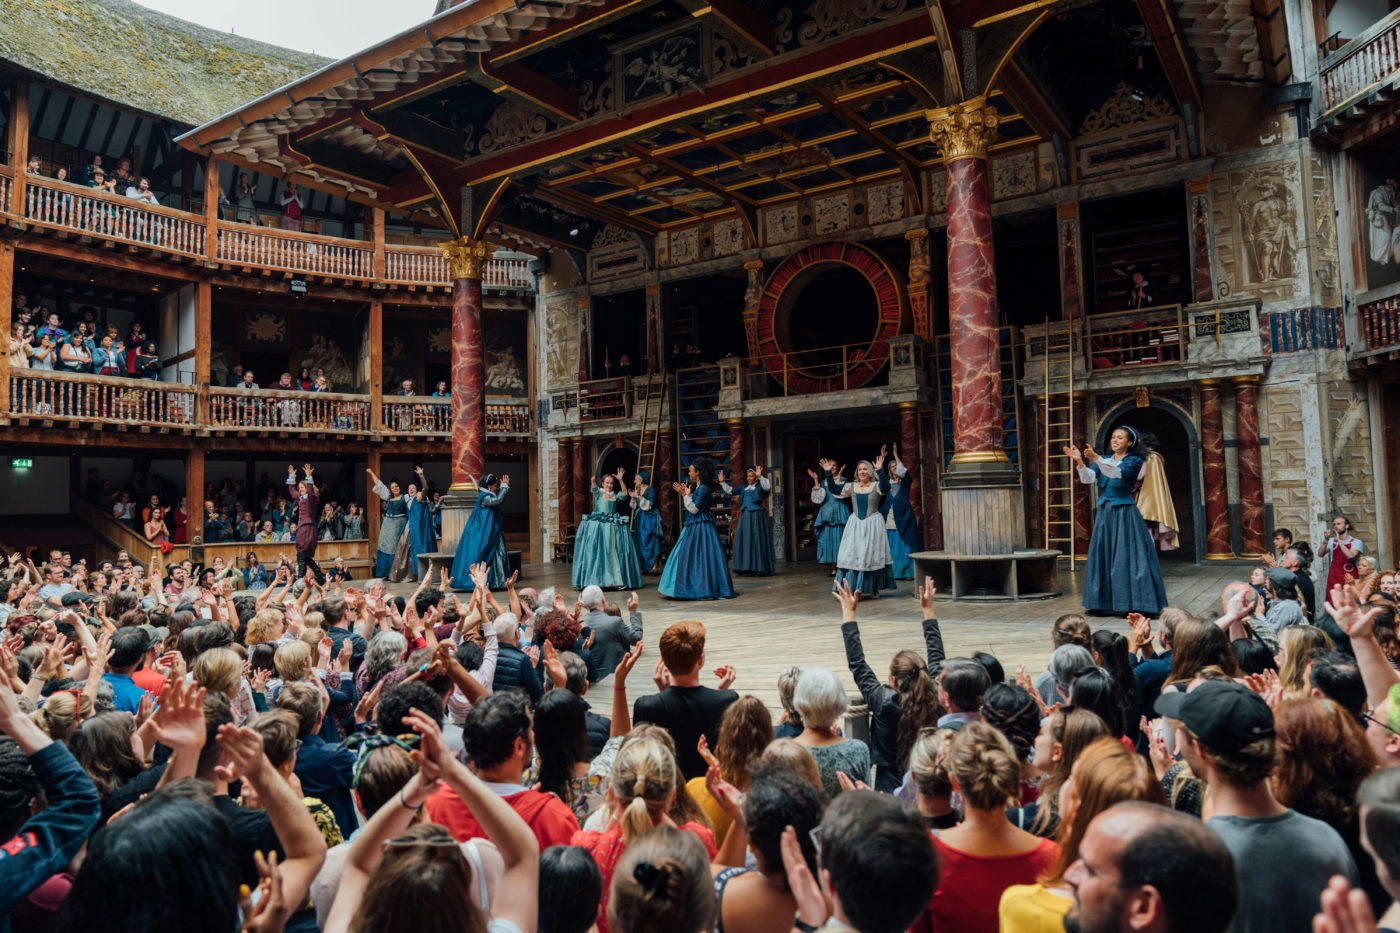 View of actors on Globe stage with audience standing